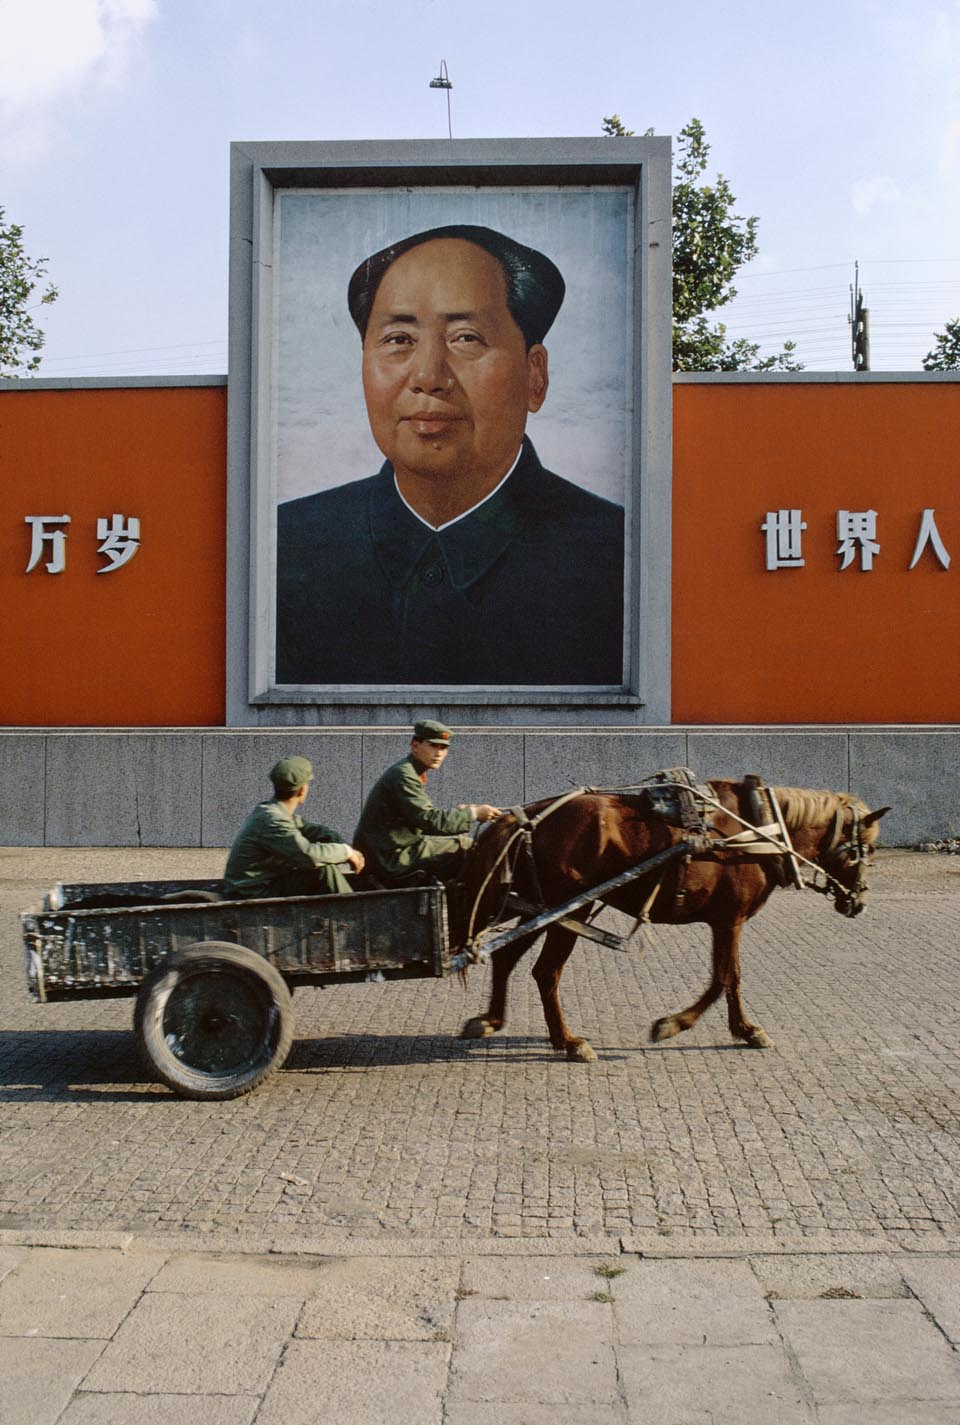 Mao portrait Suzhou, 1973 © Bruno Barbey / Beaugeste Gallery